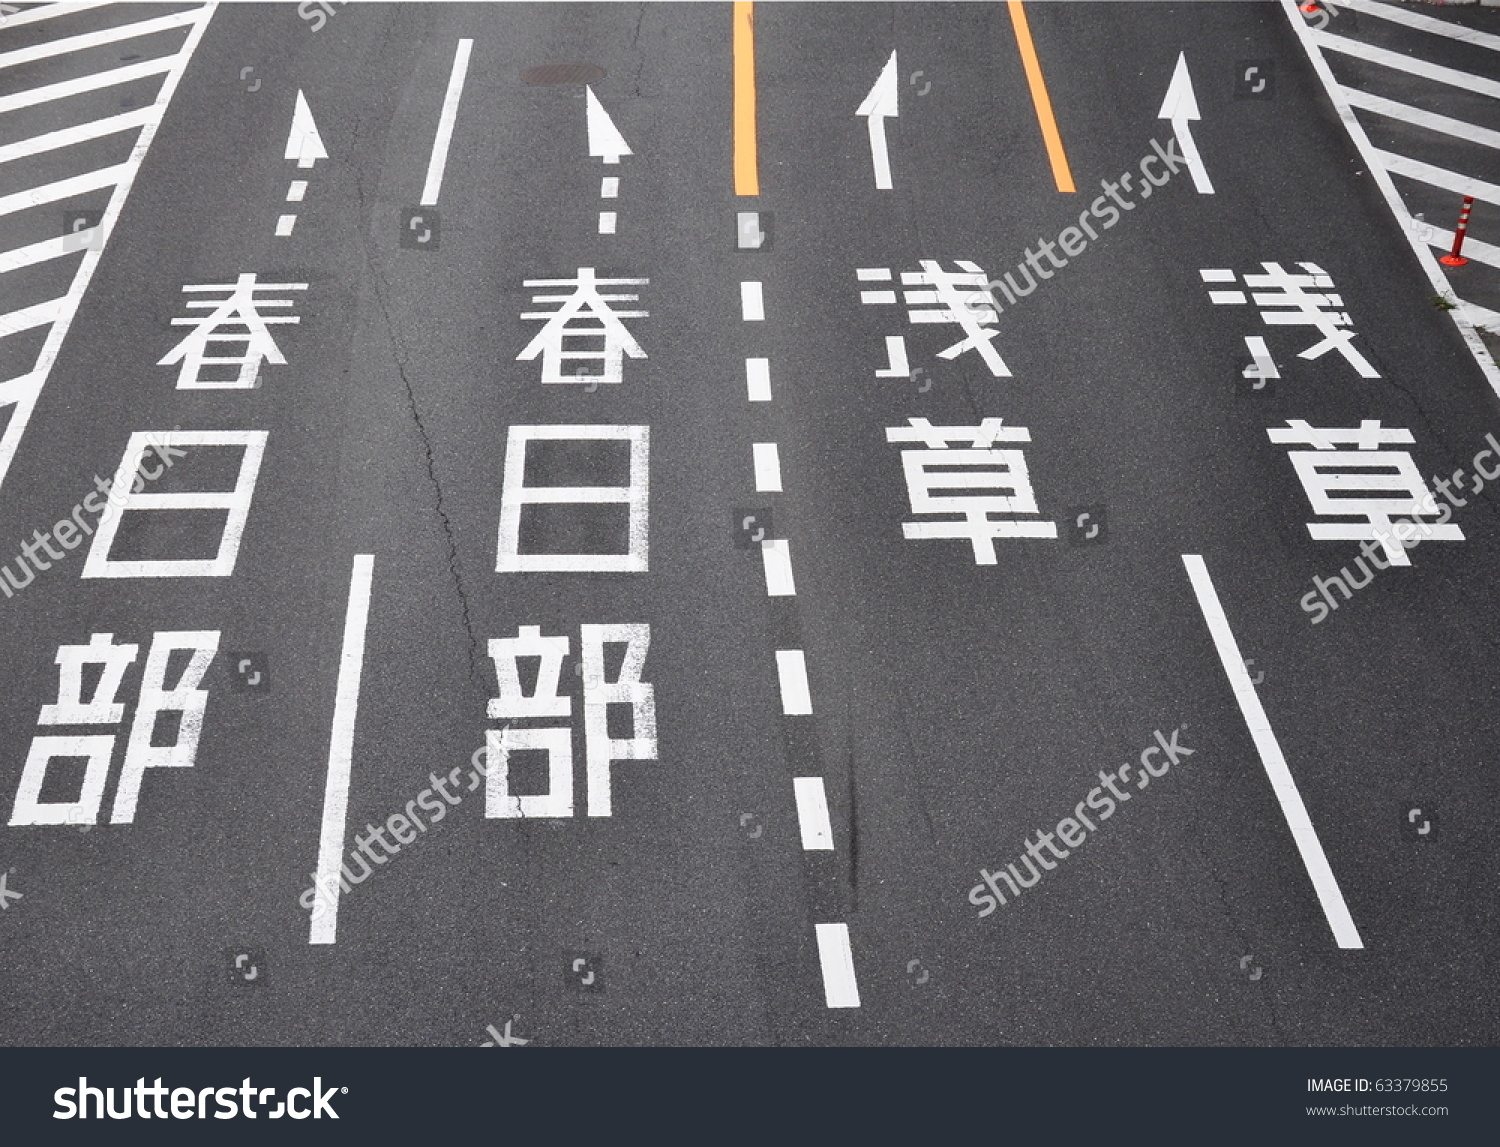 high resolution road signs